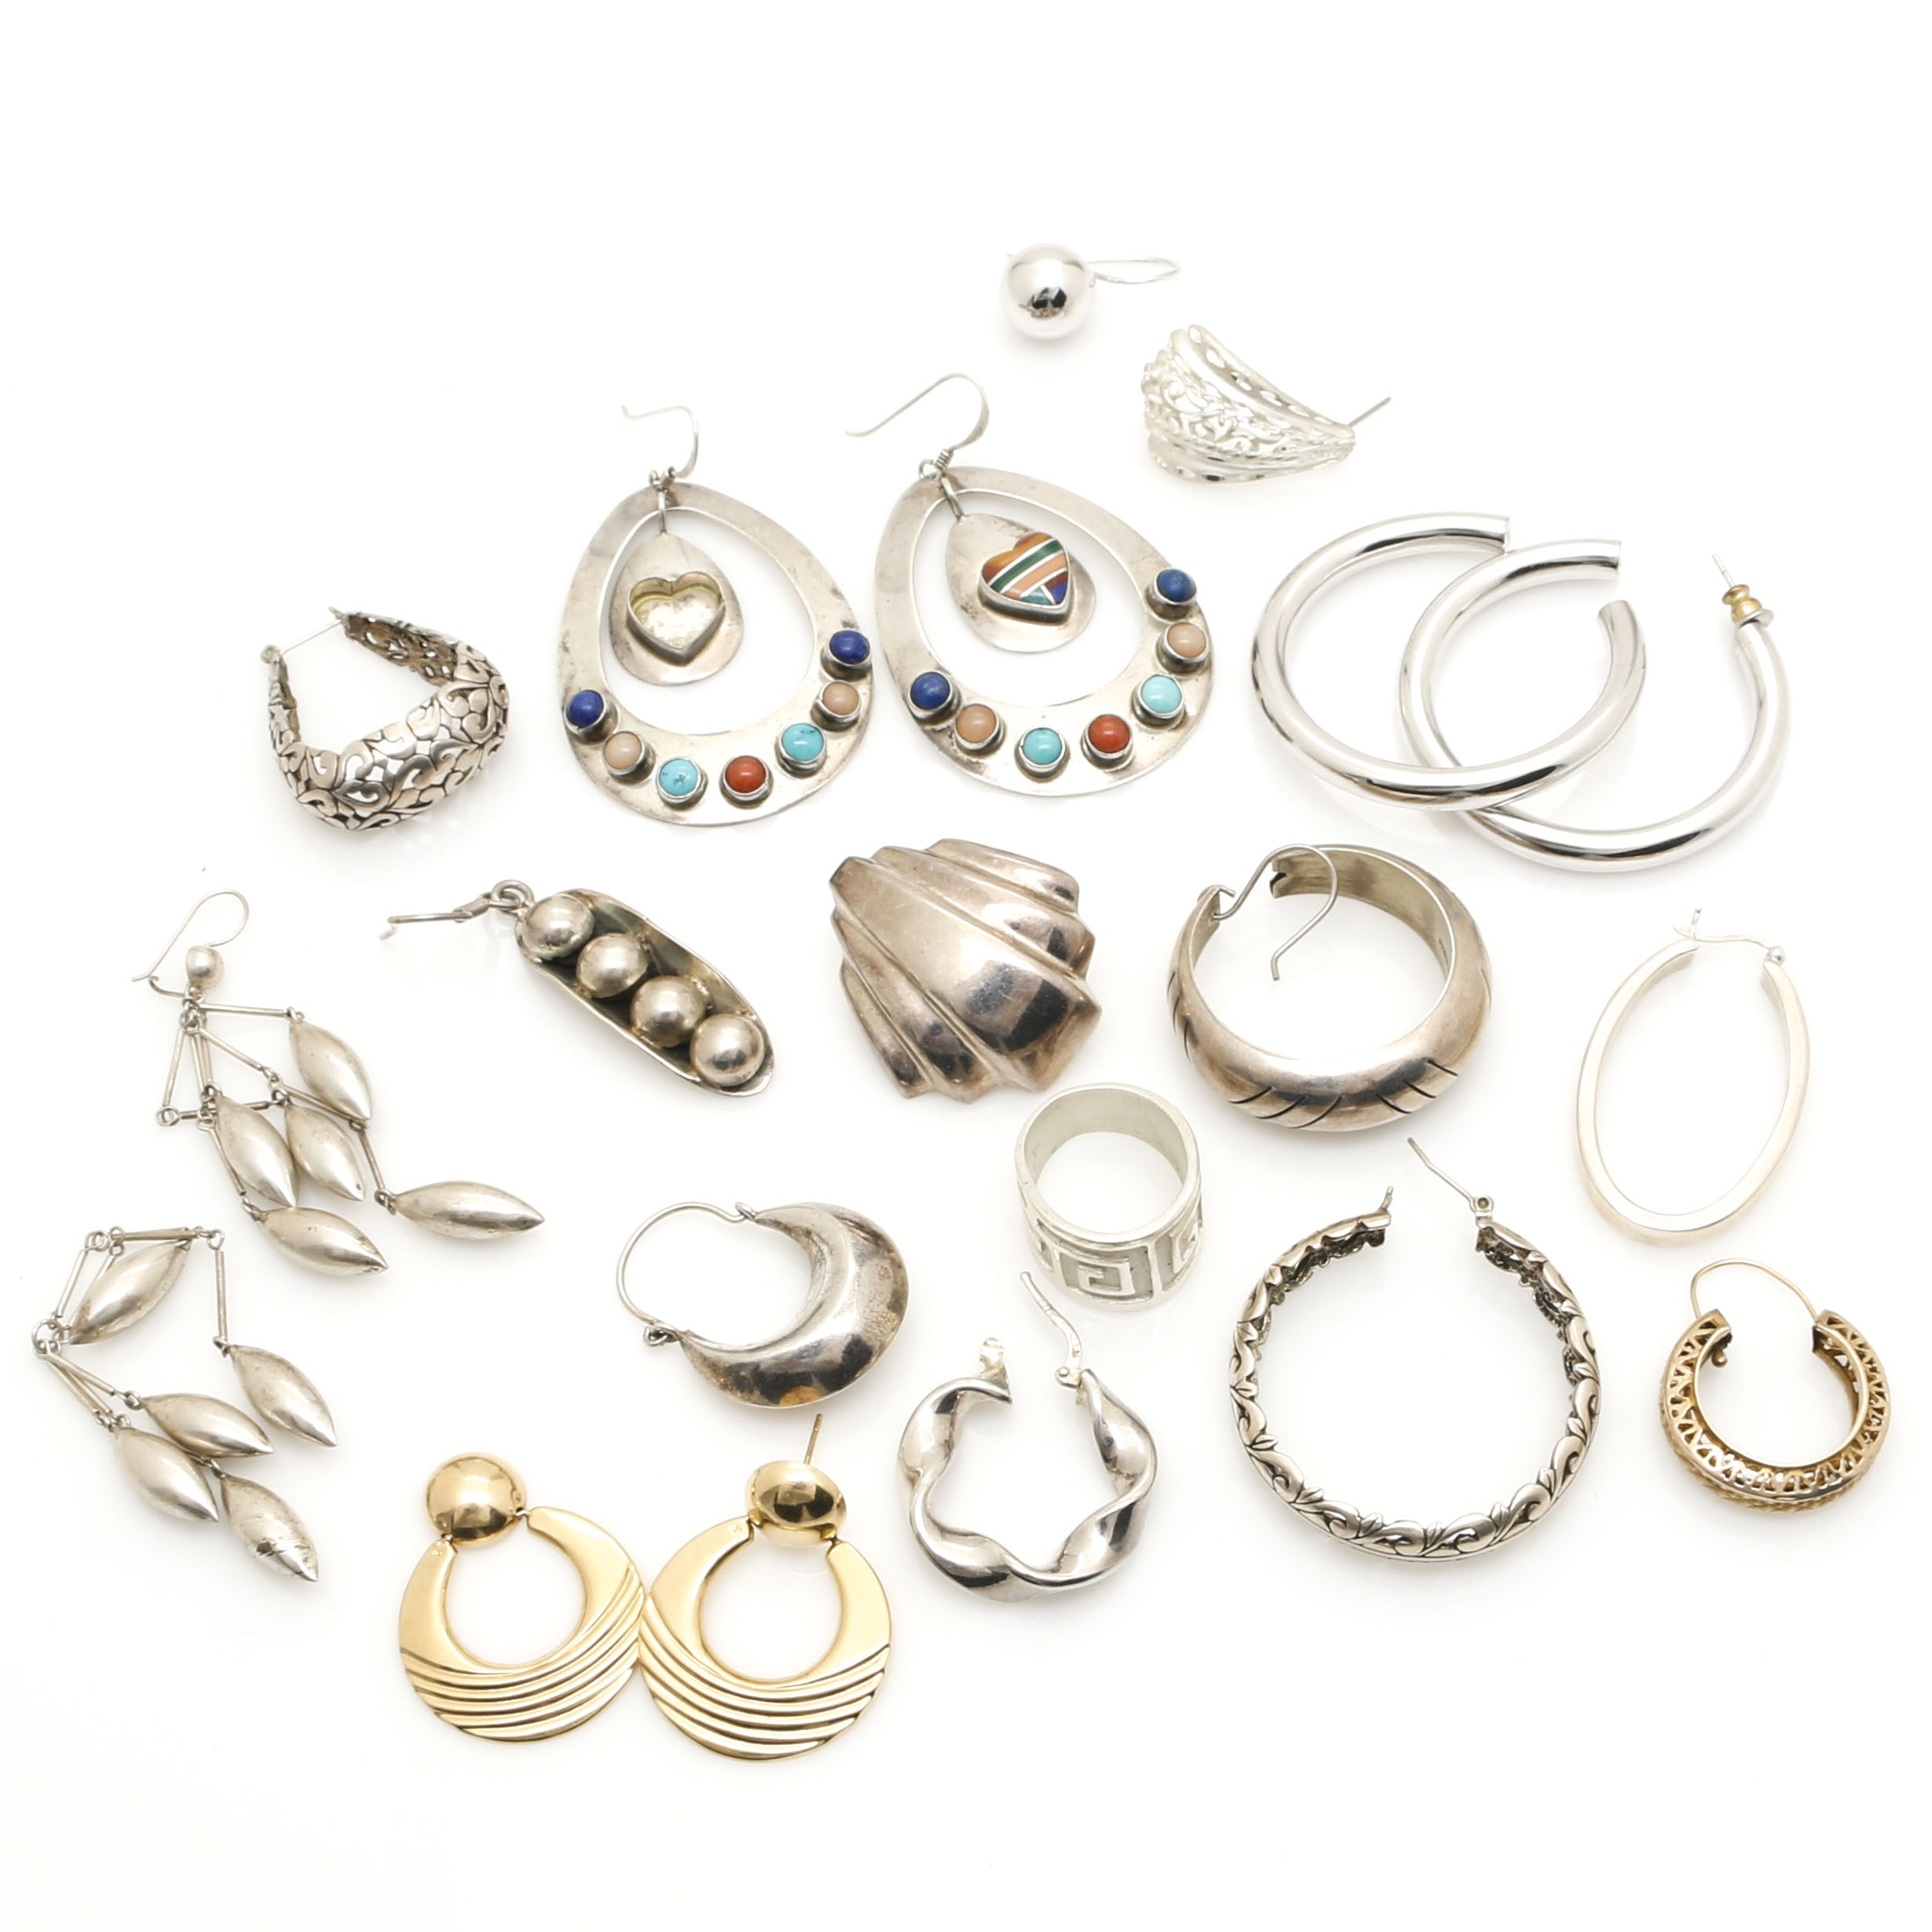 14K Yellow Gold and Sterling Silver Scrap Jewelry